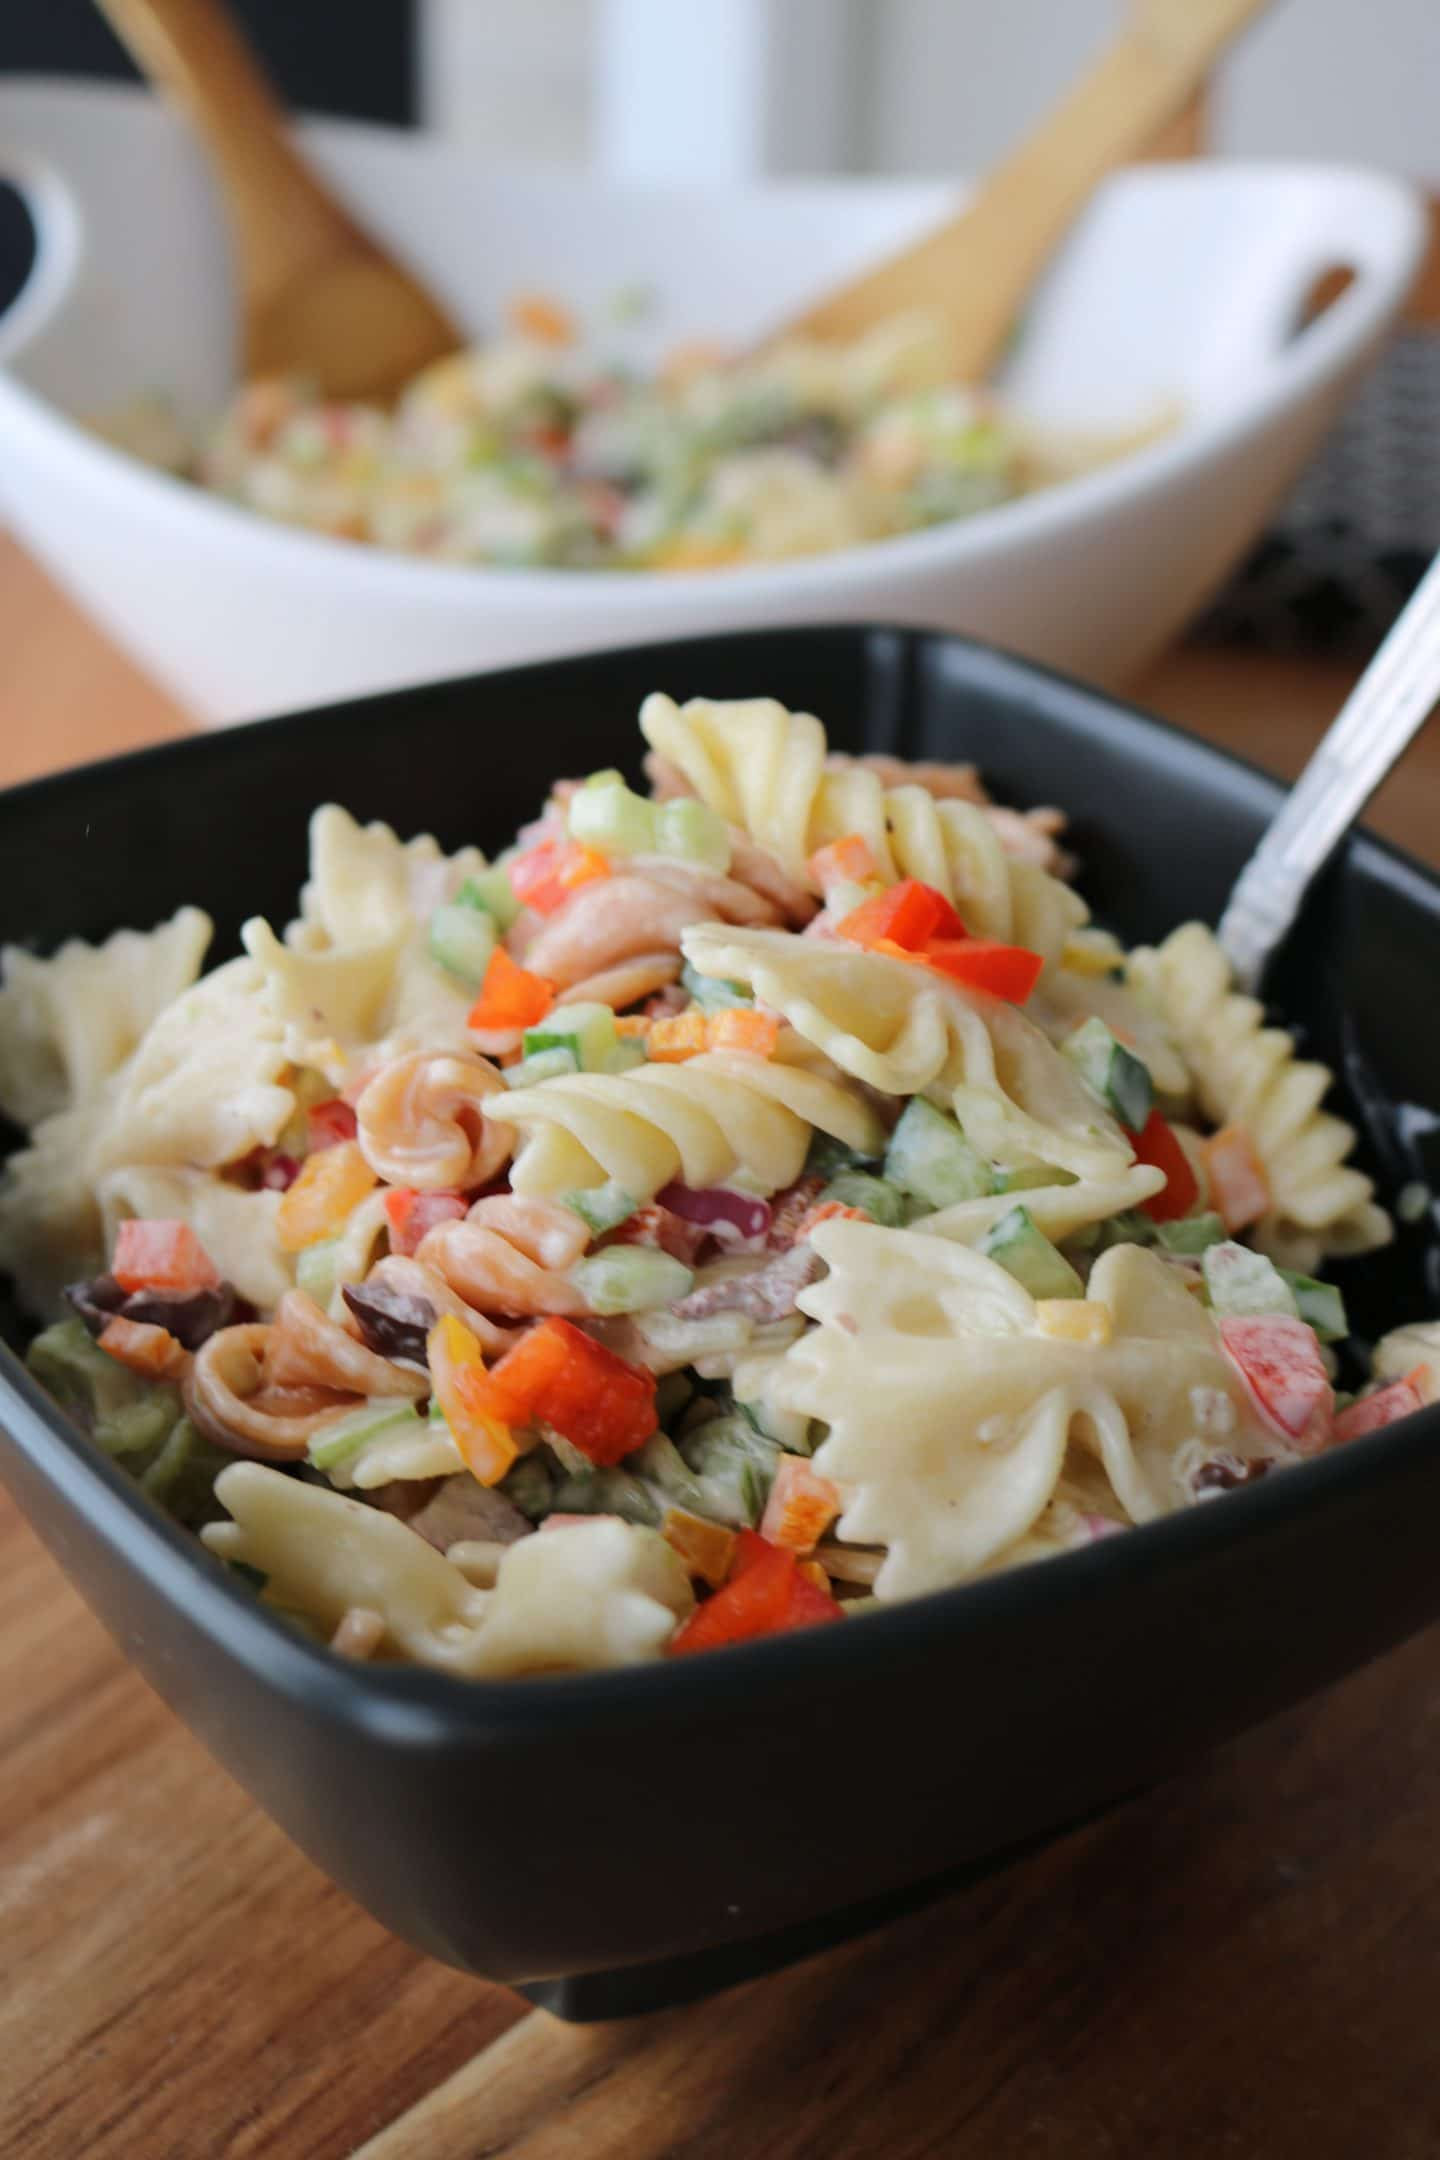 A Bowl of Vegetarian Pasta Salad